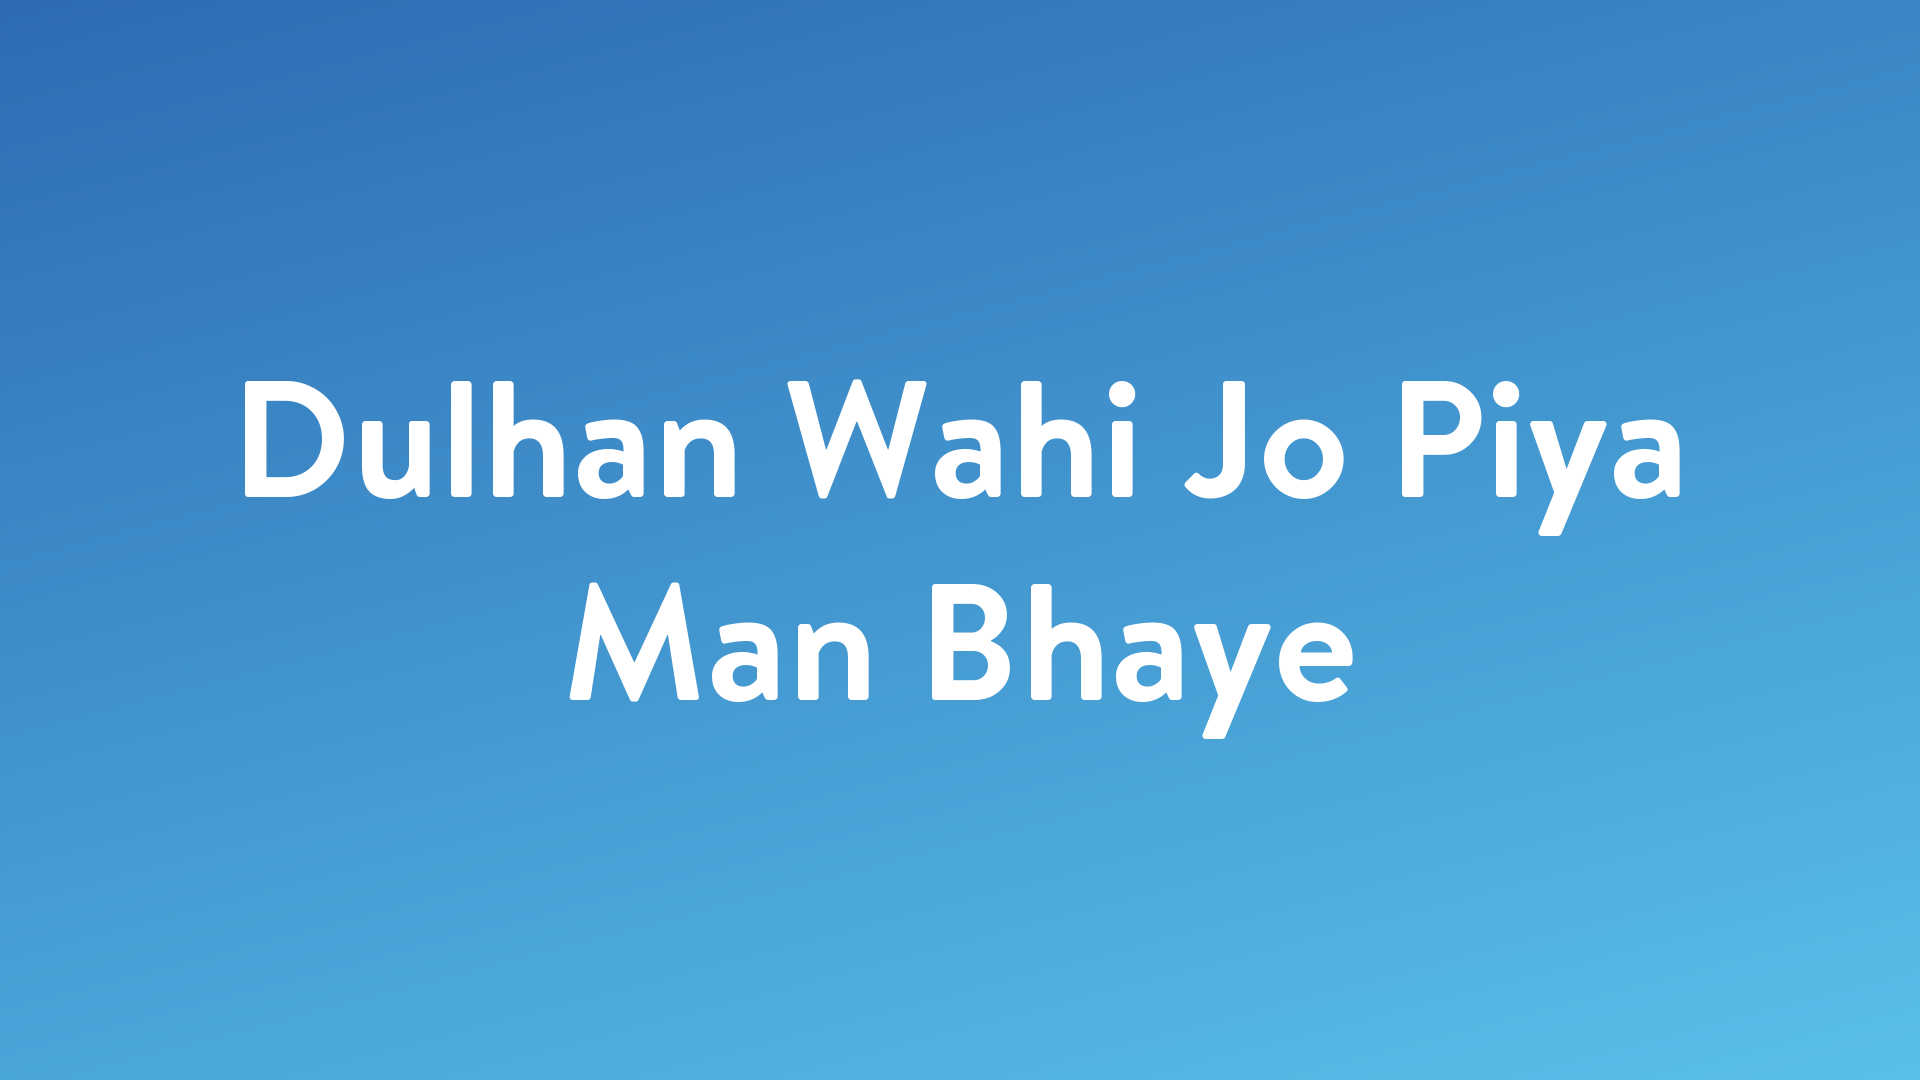 Stream And Watch Dulhan Wahi Jo Piya Man Bhaye Online Sling Tv